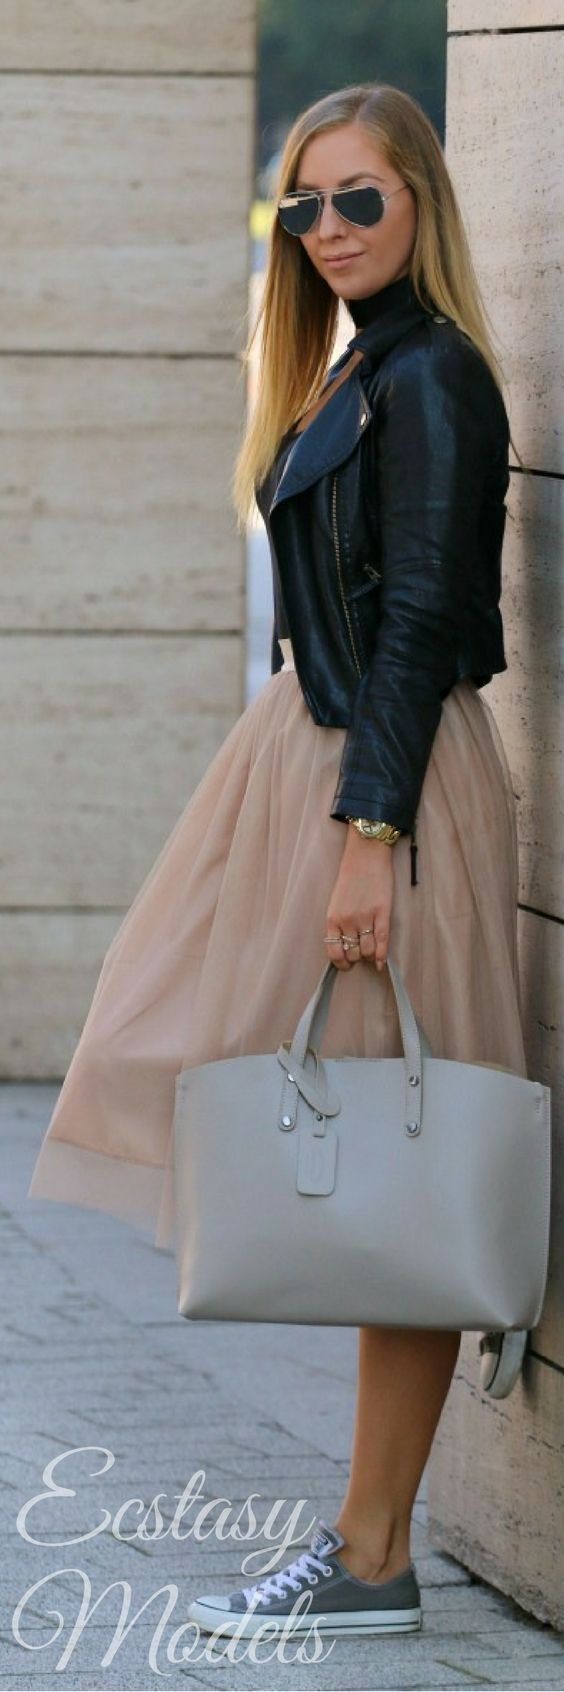 Tulle Skirt // Fashion Look by Style And Blog